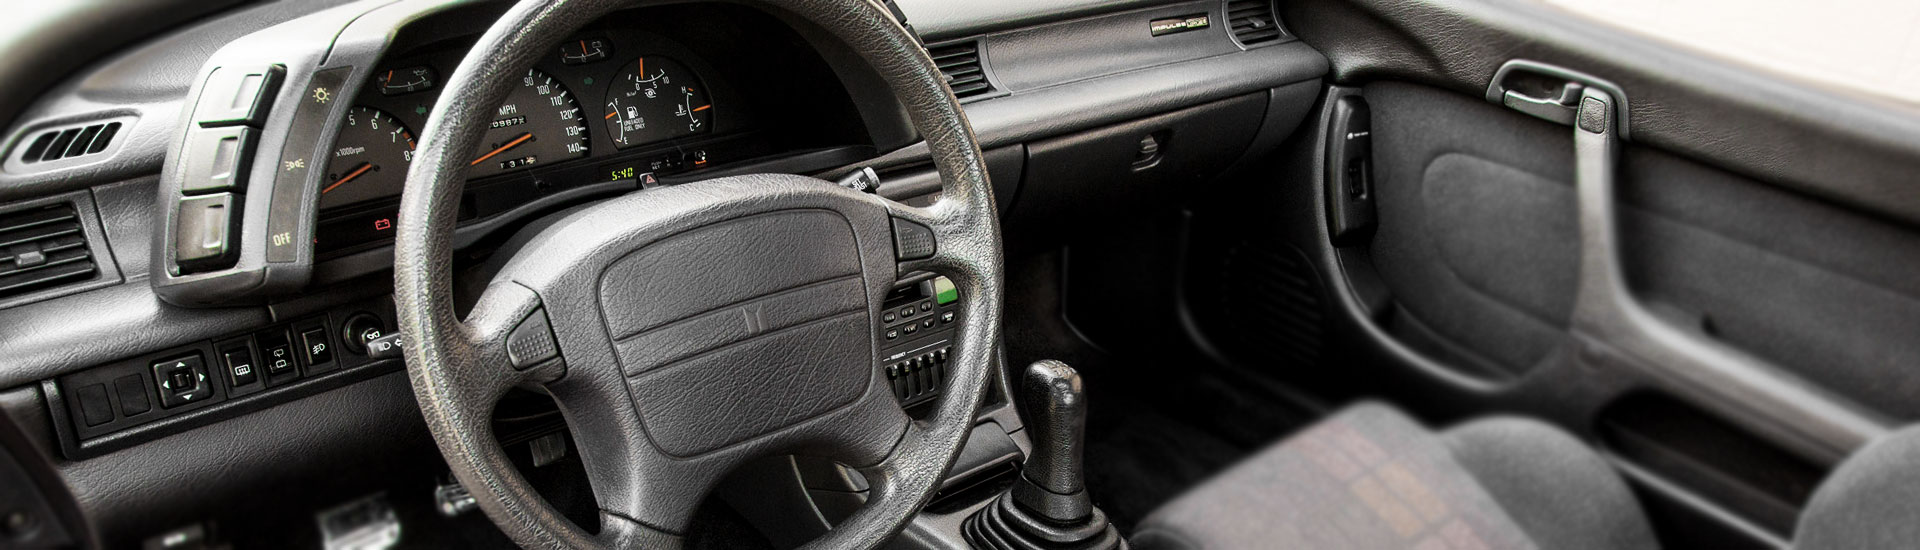 Isuzu Impulse Custom Dash Kits